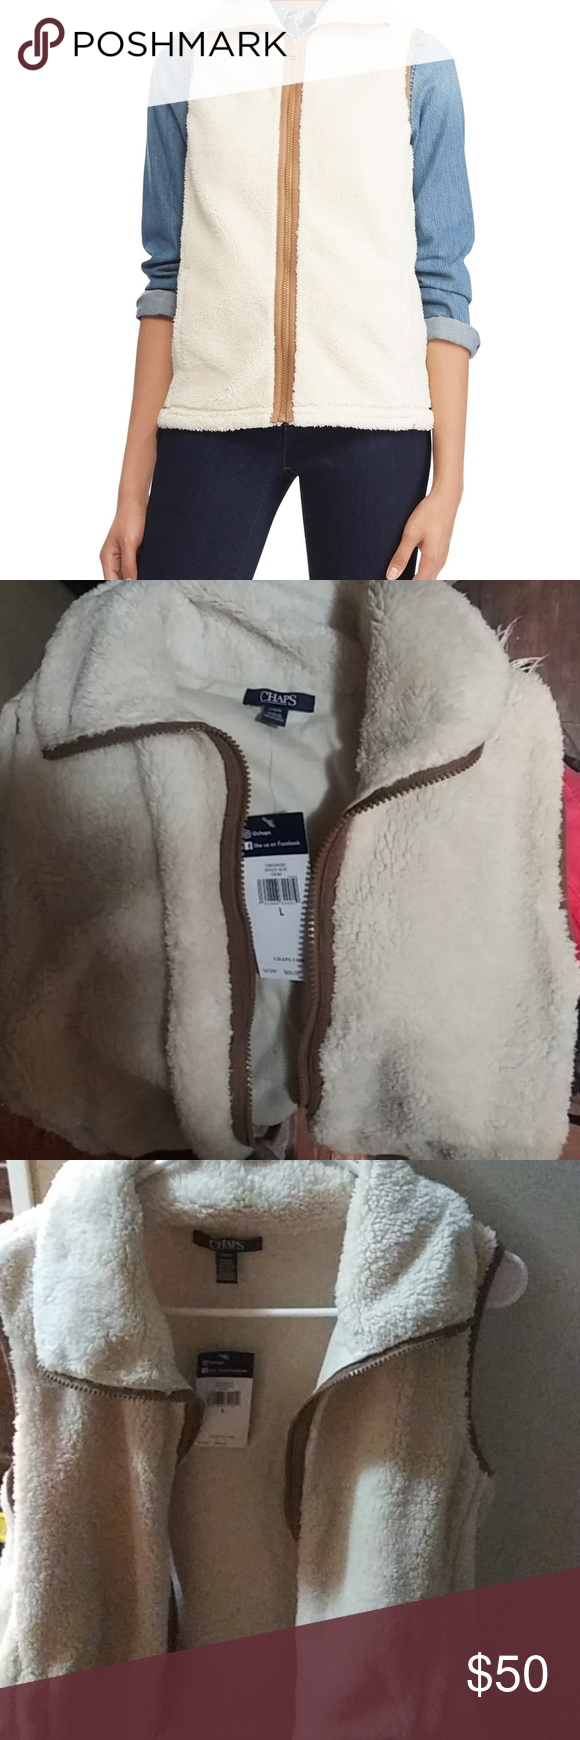 cd5be7a4357 Women Chaps Sherpa Cream Color Vest size Large Layer this impossibly soft  womens vest over sweaters